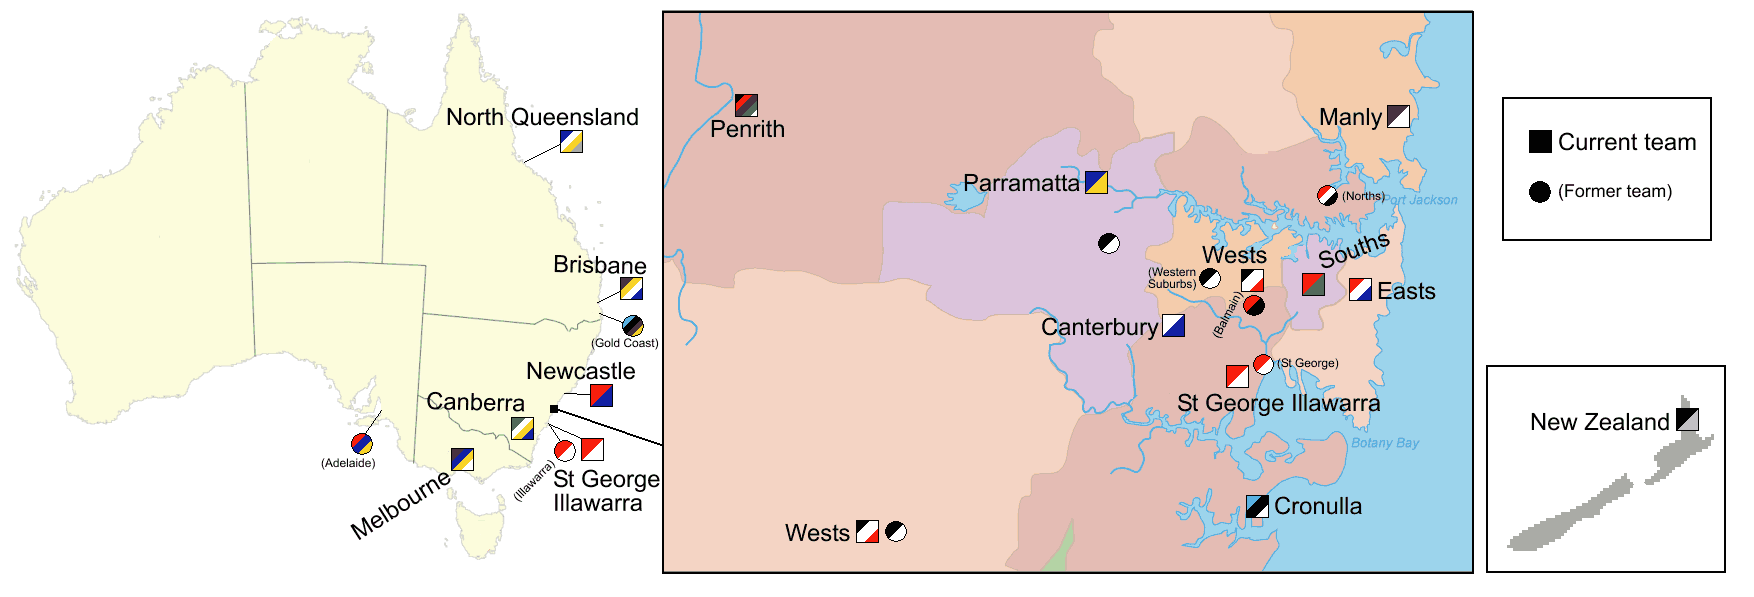 National Rugby League Team Locations